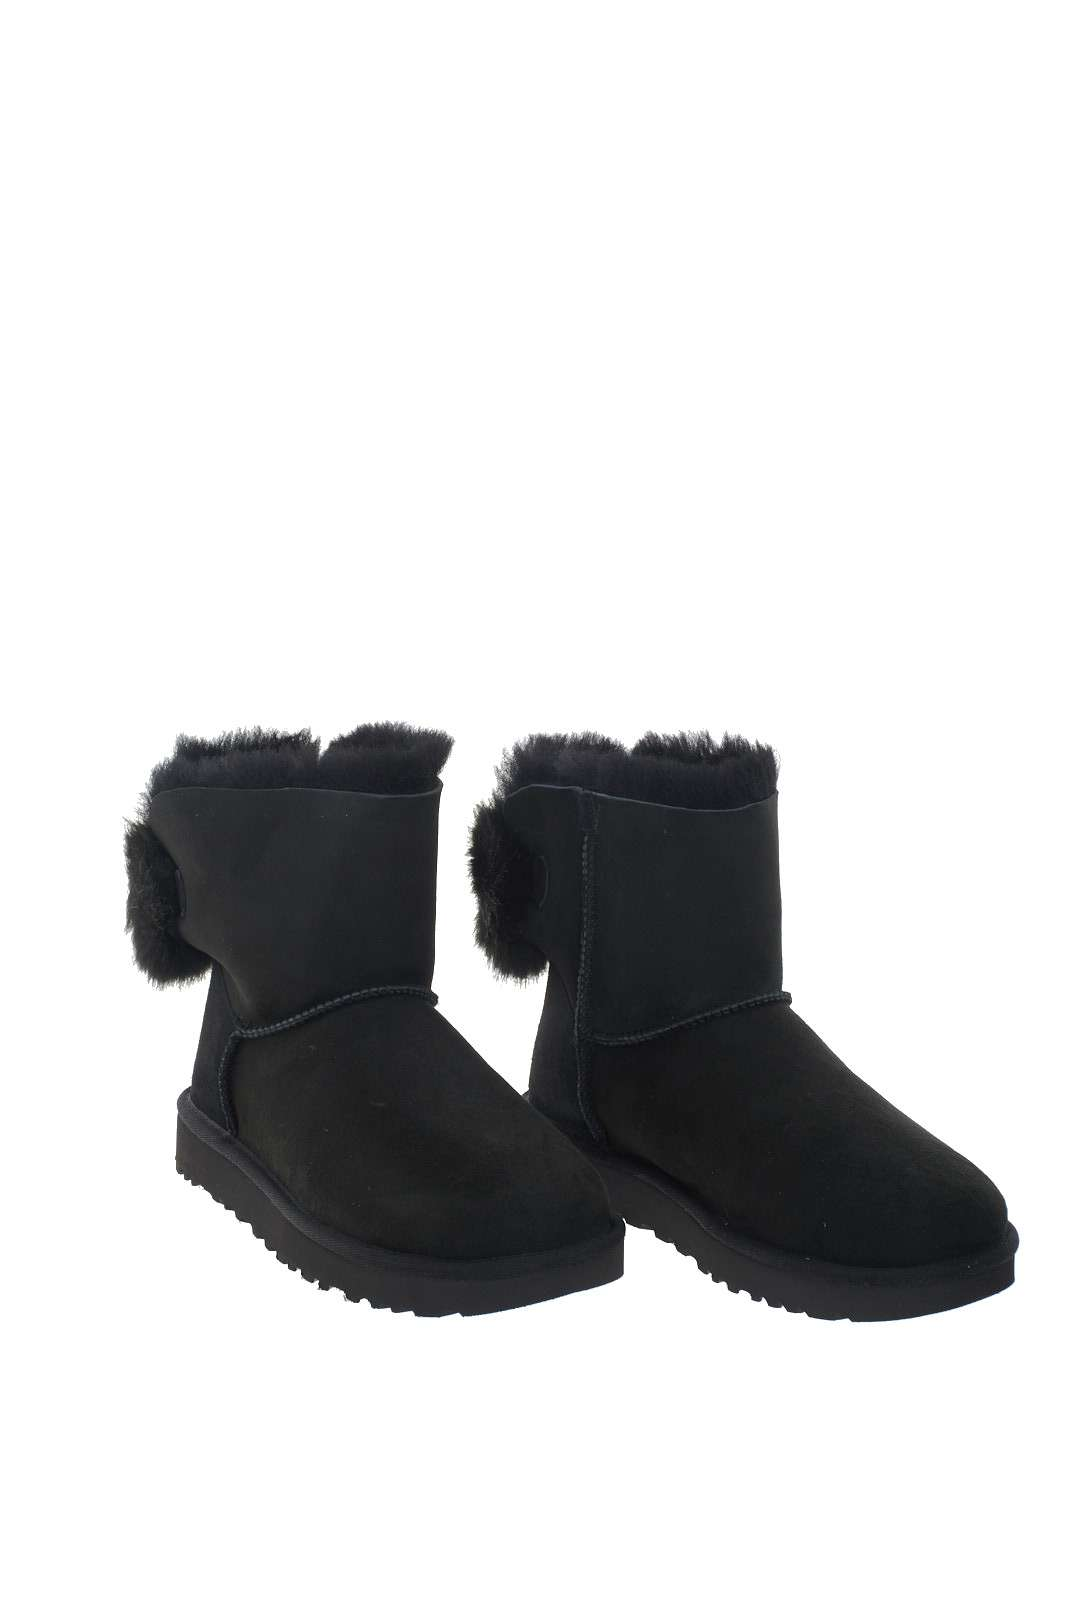 https://www.parmax.com/media/catalog/product/a/i/AI-outlet_parmax-stivaletti-donna-Ugg-1103776-D.jpg